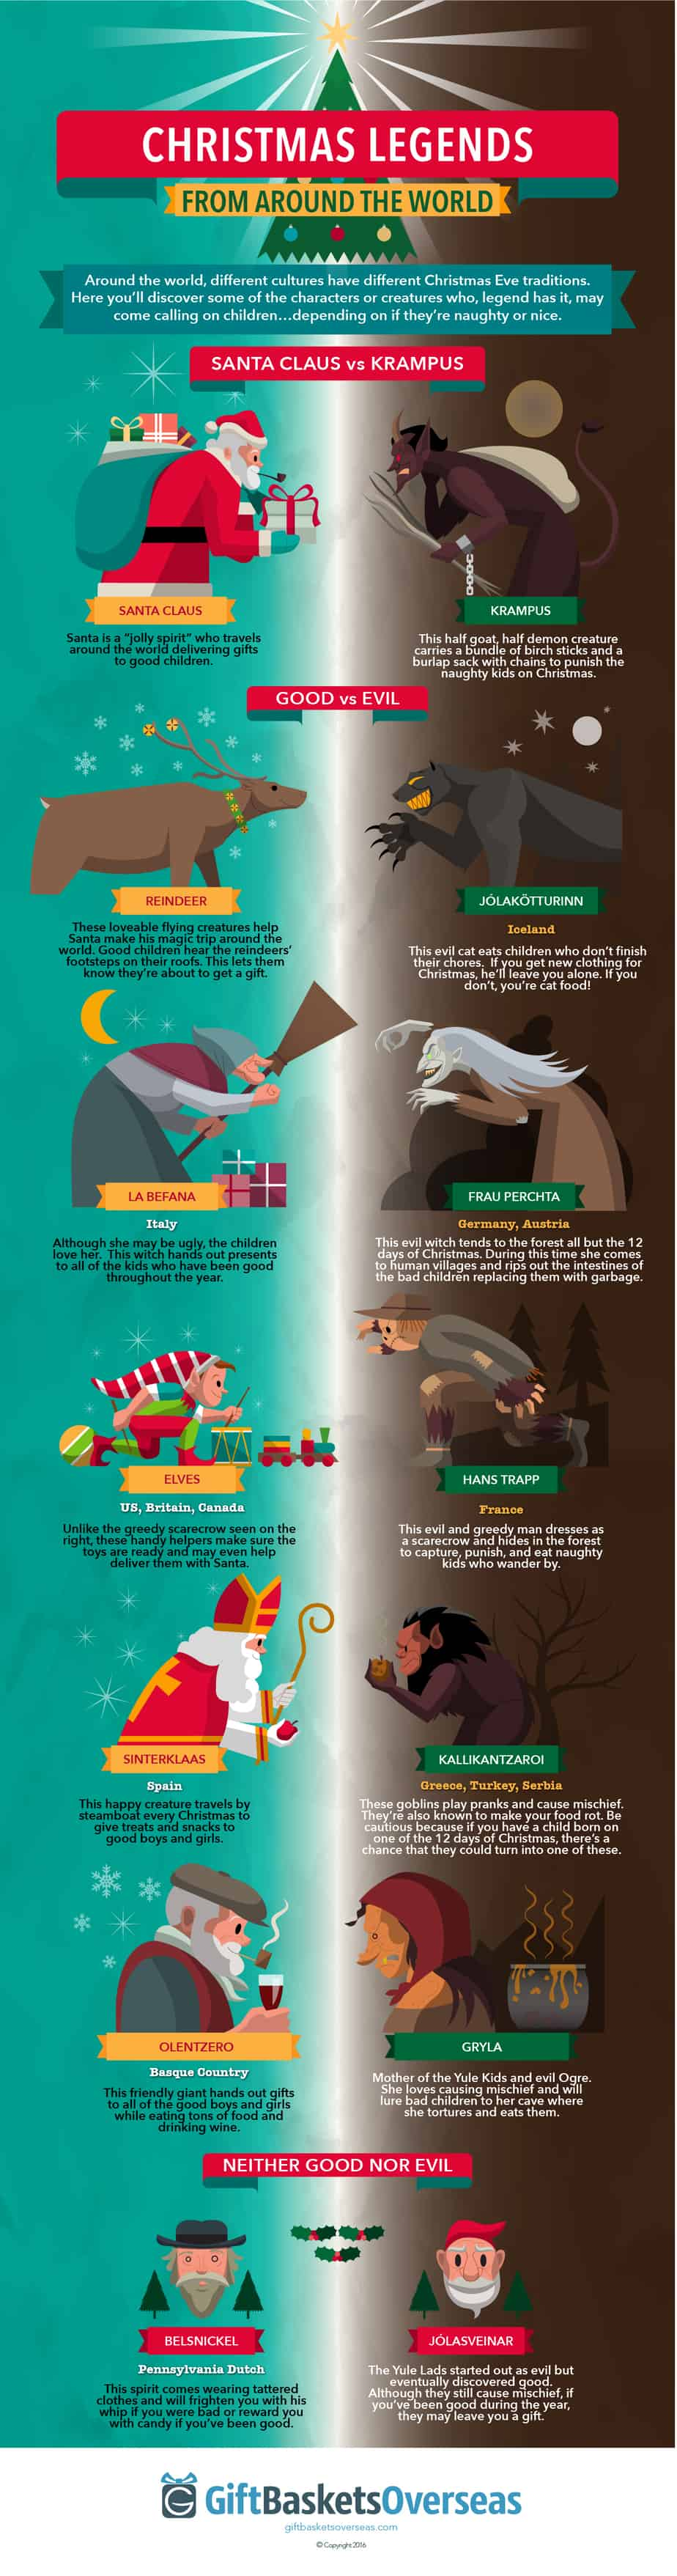 Mythical and Legendary Creatures of Christmas